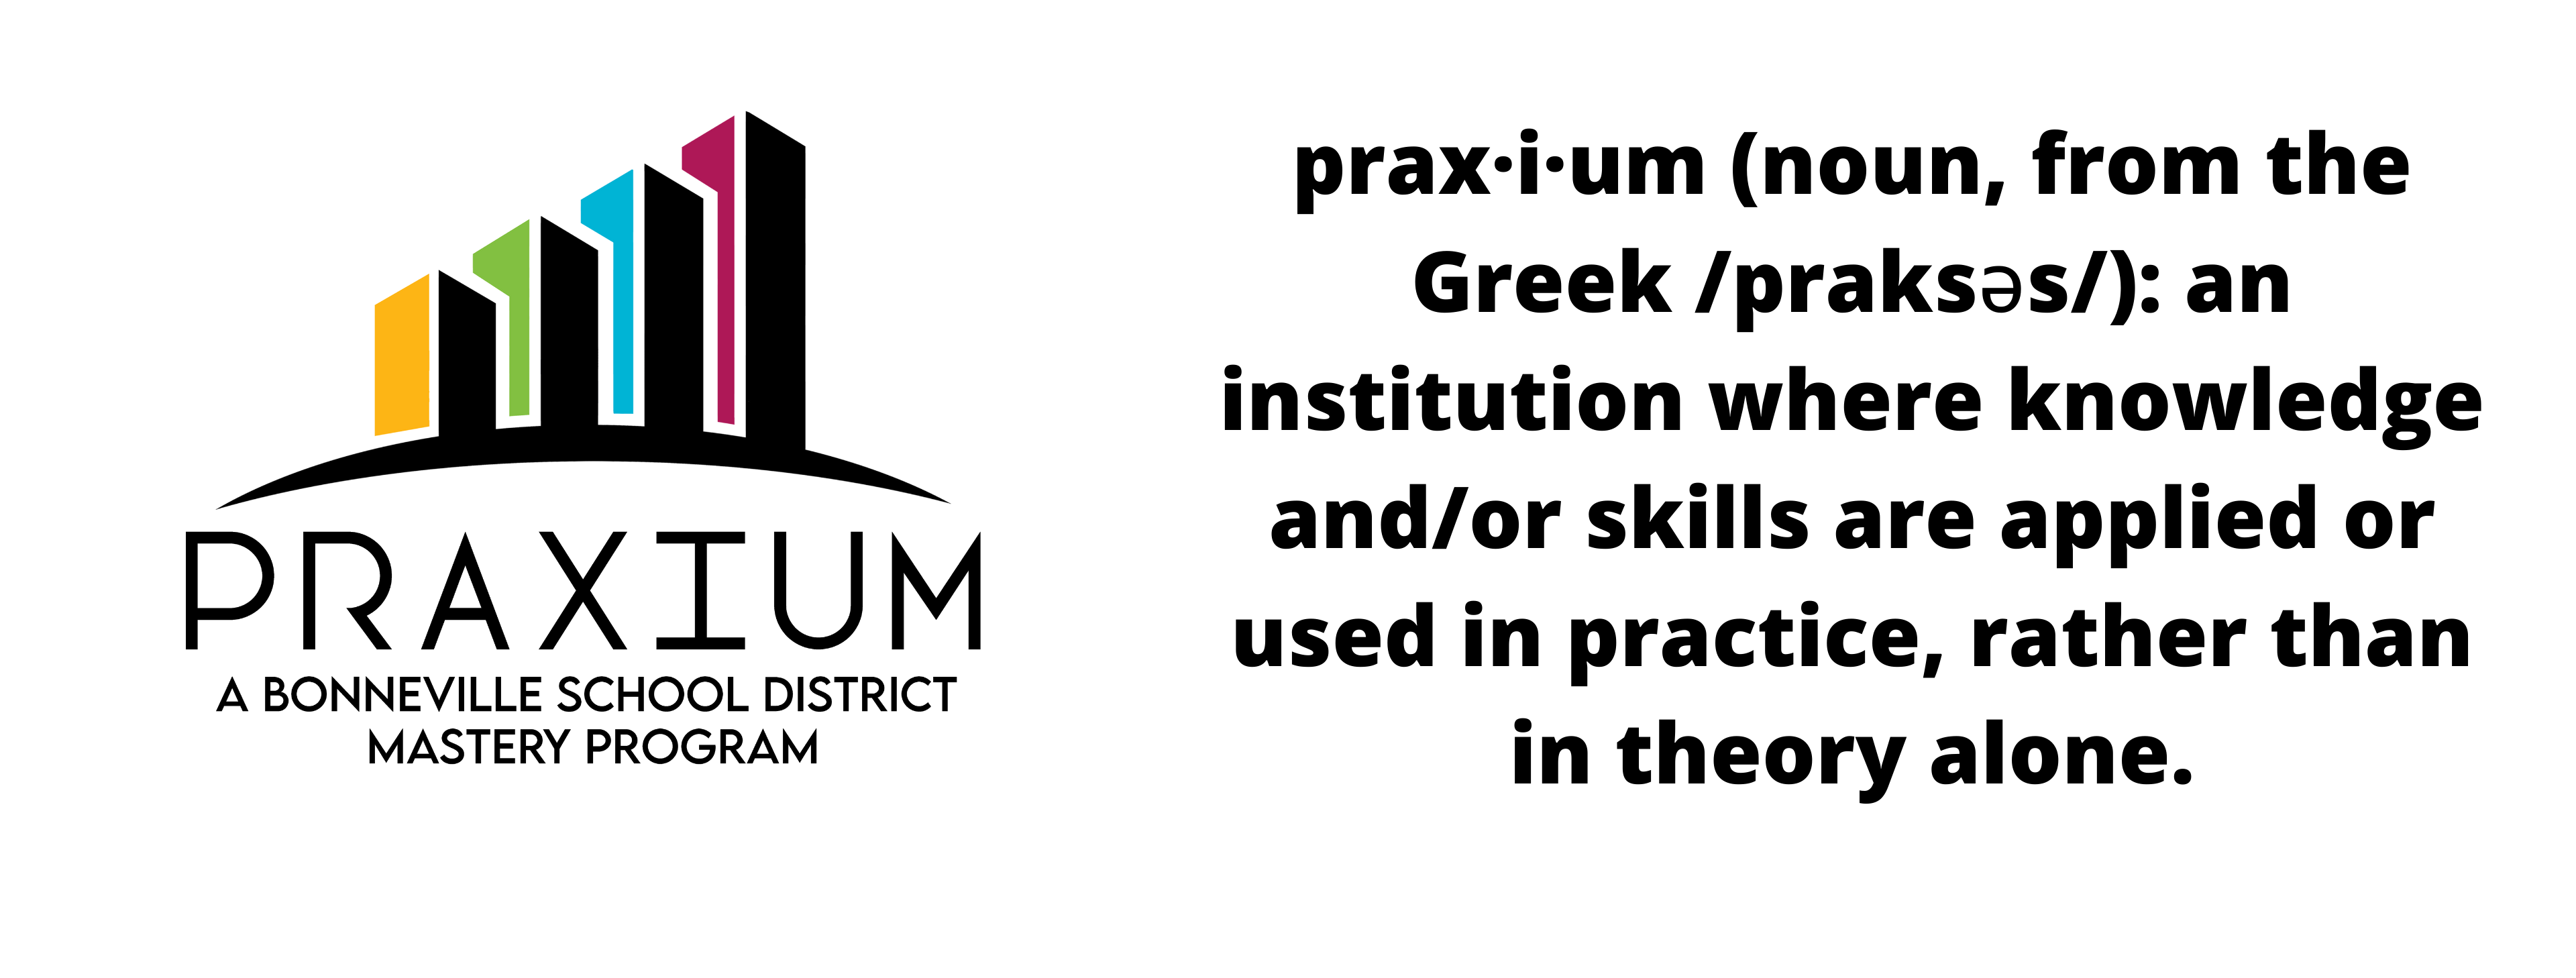 Praxium A Bonneville School District Mastery Program praxium (noun, from the Greek/prakses/): an institution where knowledge and/or skills are applied or used in practice, rather than in theory alone.